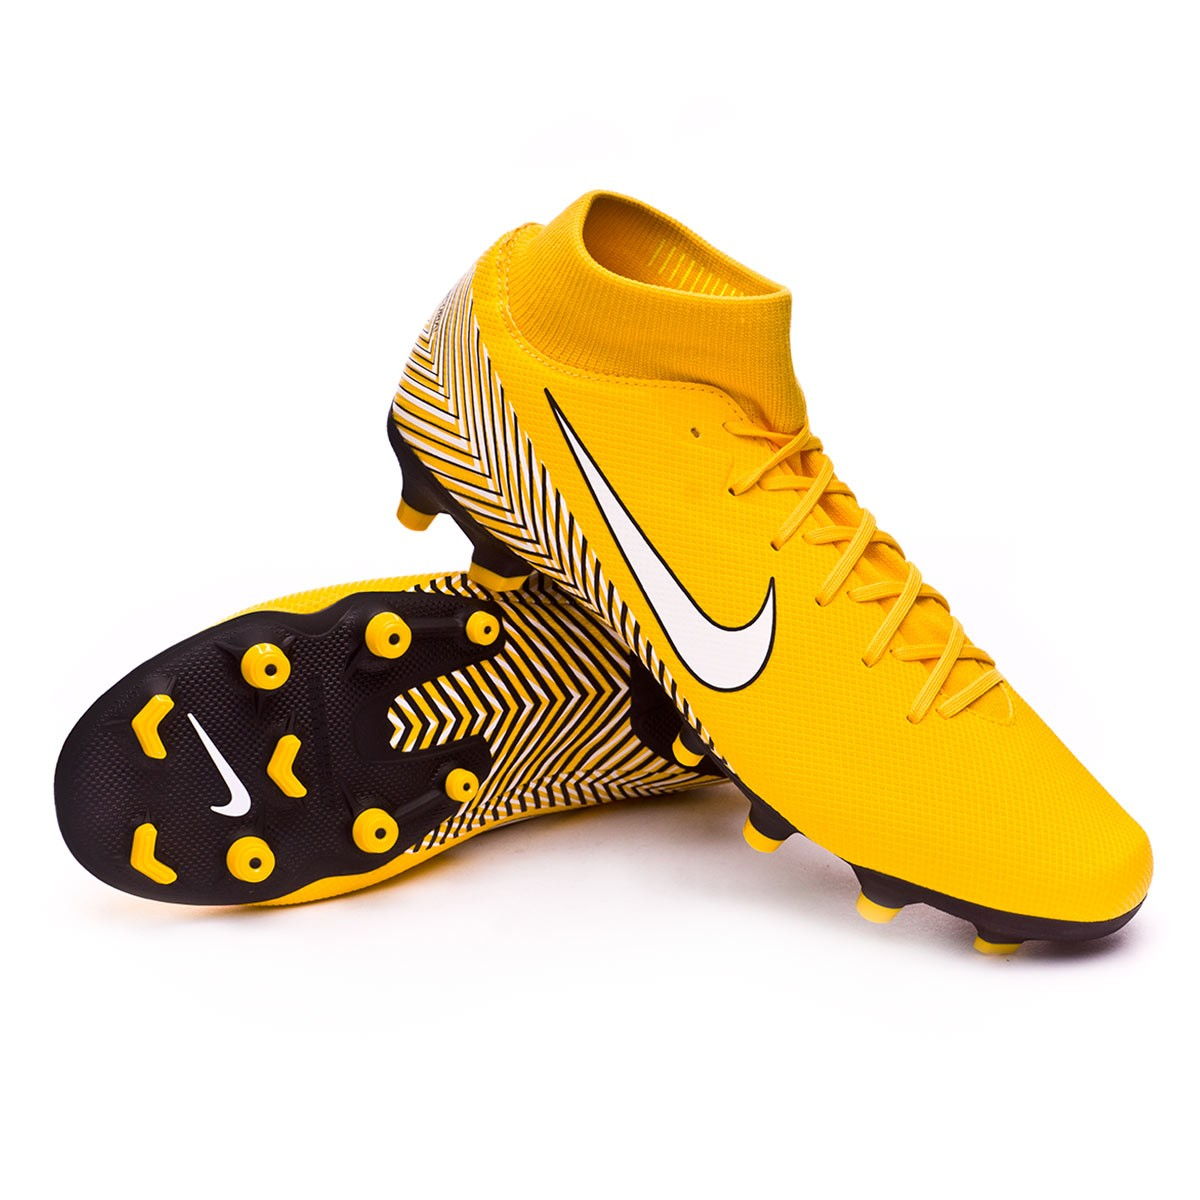 b26a4a962 Football Boots Nike Mercurial Superfly VI Academy MG Neymar Yellow ...